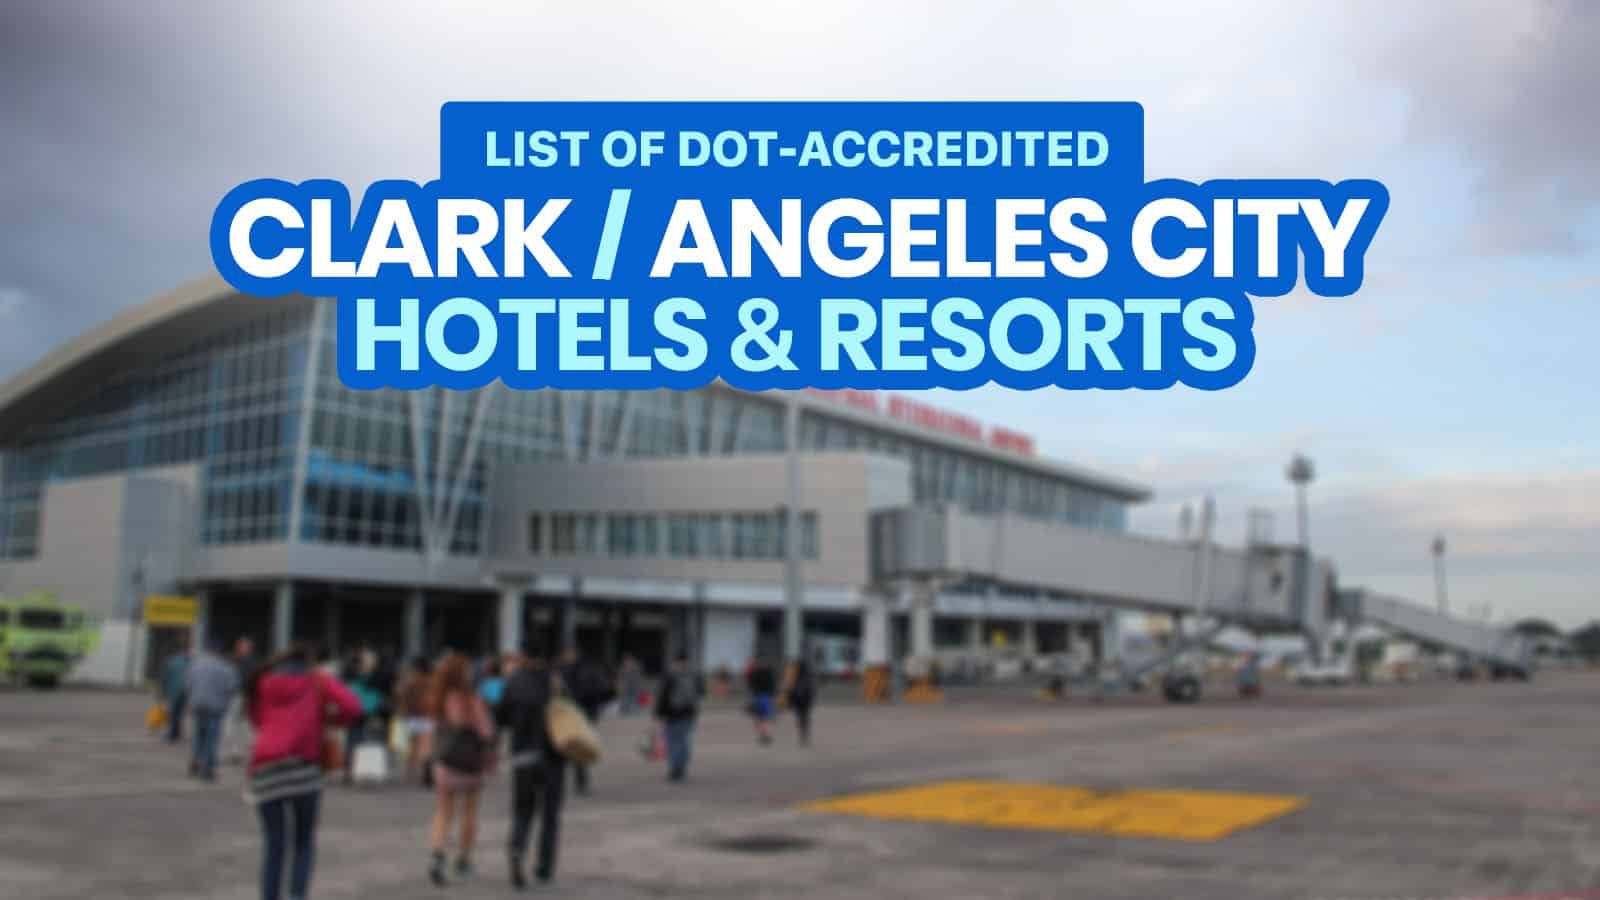 56 DOT-Accredited Hotels & Resorts Near CLARK AIRPORT & ANGELES CITY (Open Now or Soon)